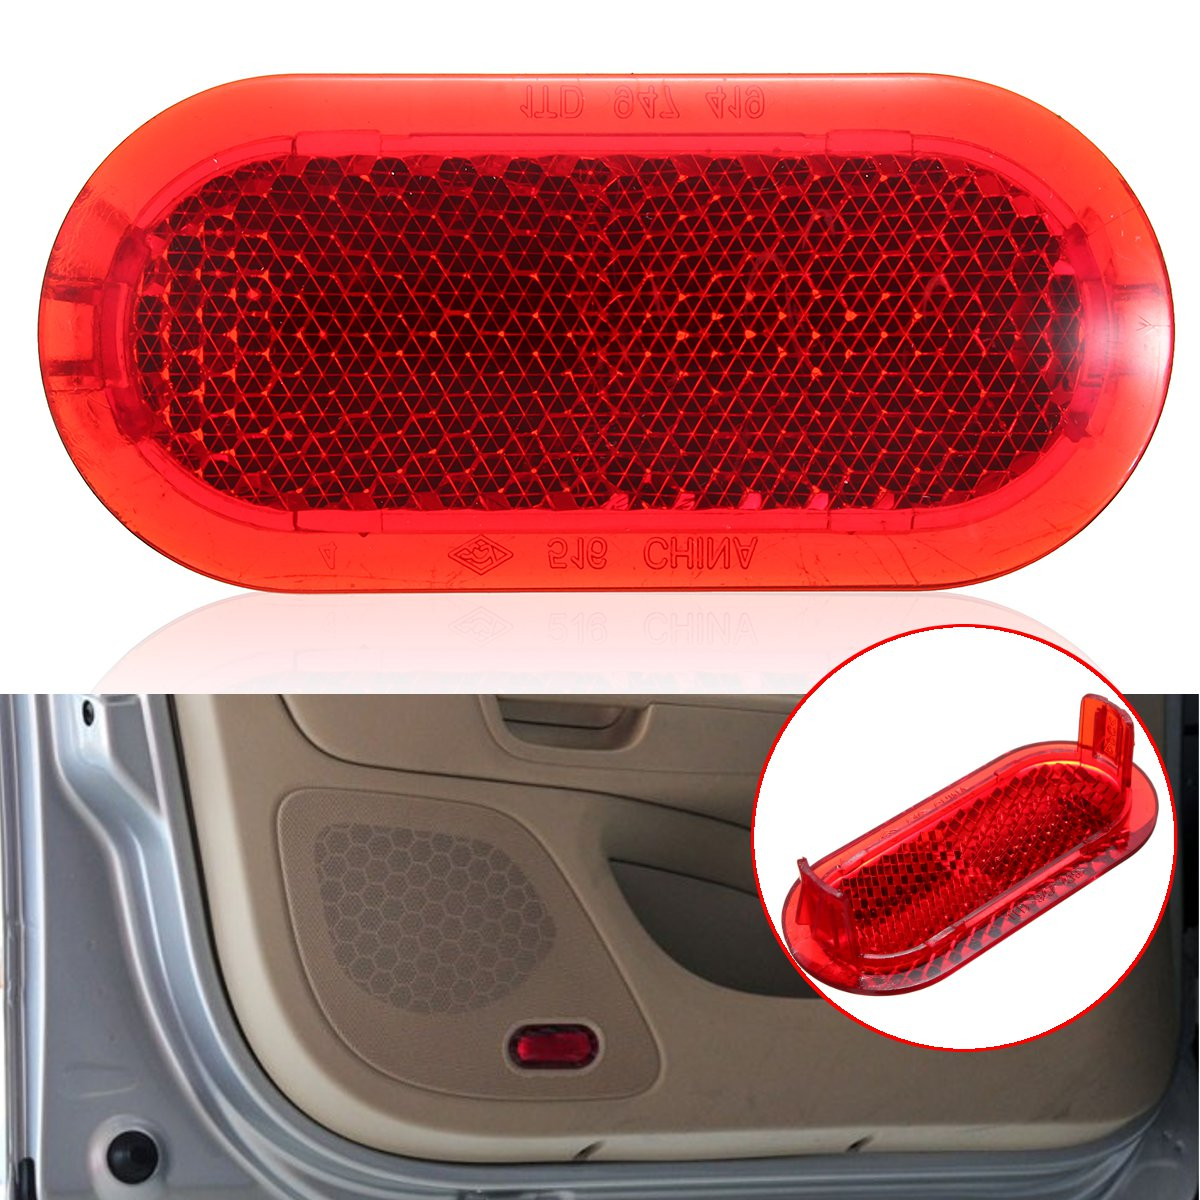 1Pcs Car/Auto Door Interior Courtesy Door Red Warning Light Reflector For VW Beetle Caddy Polo Touran 6Q0947419